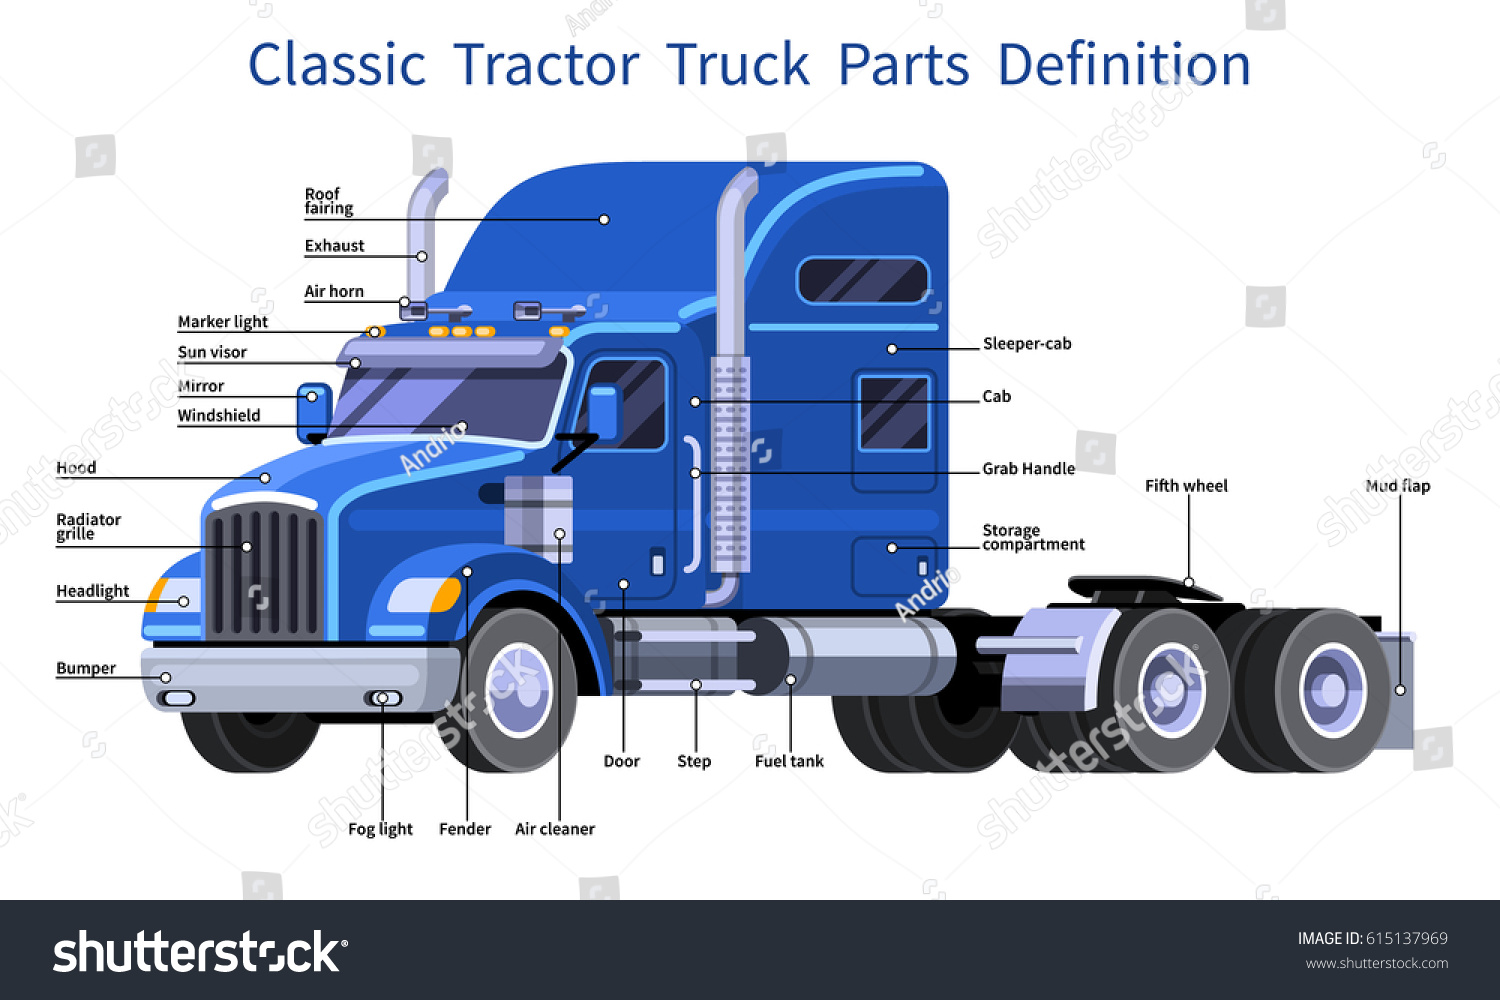 Classic tractor truck parts definition truck stock vector for Define commercial motor vehicle